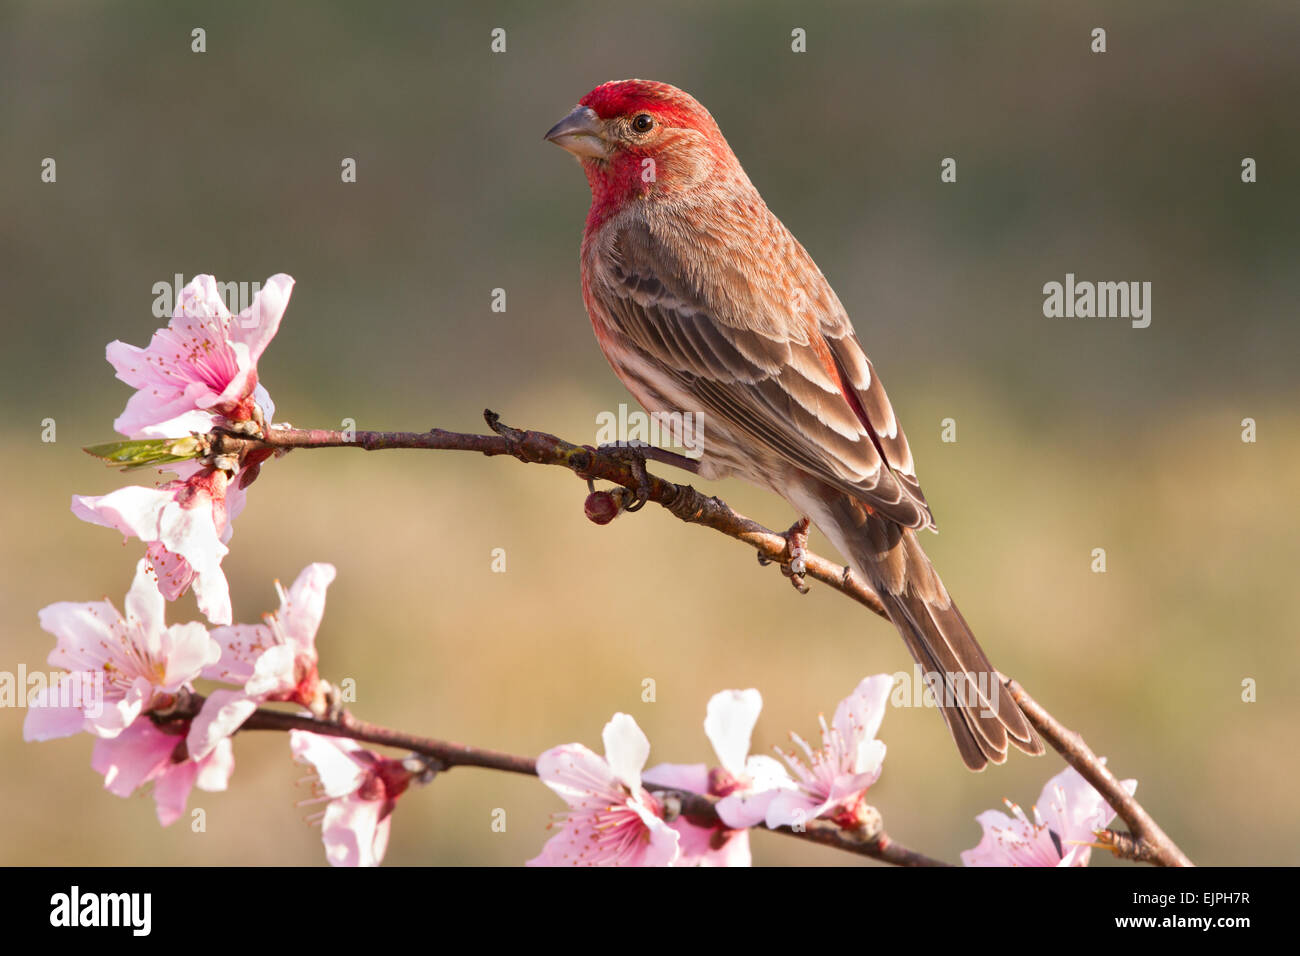 A male house finch perched on a peach tree branch - Stock Image